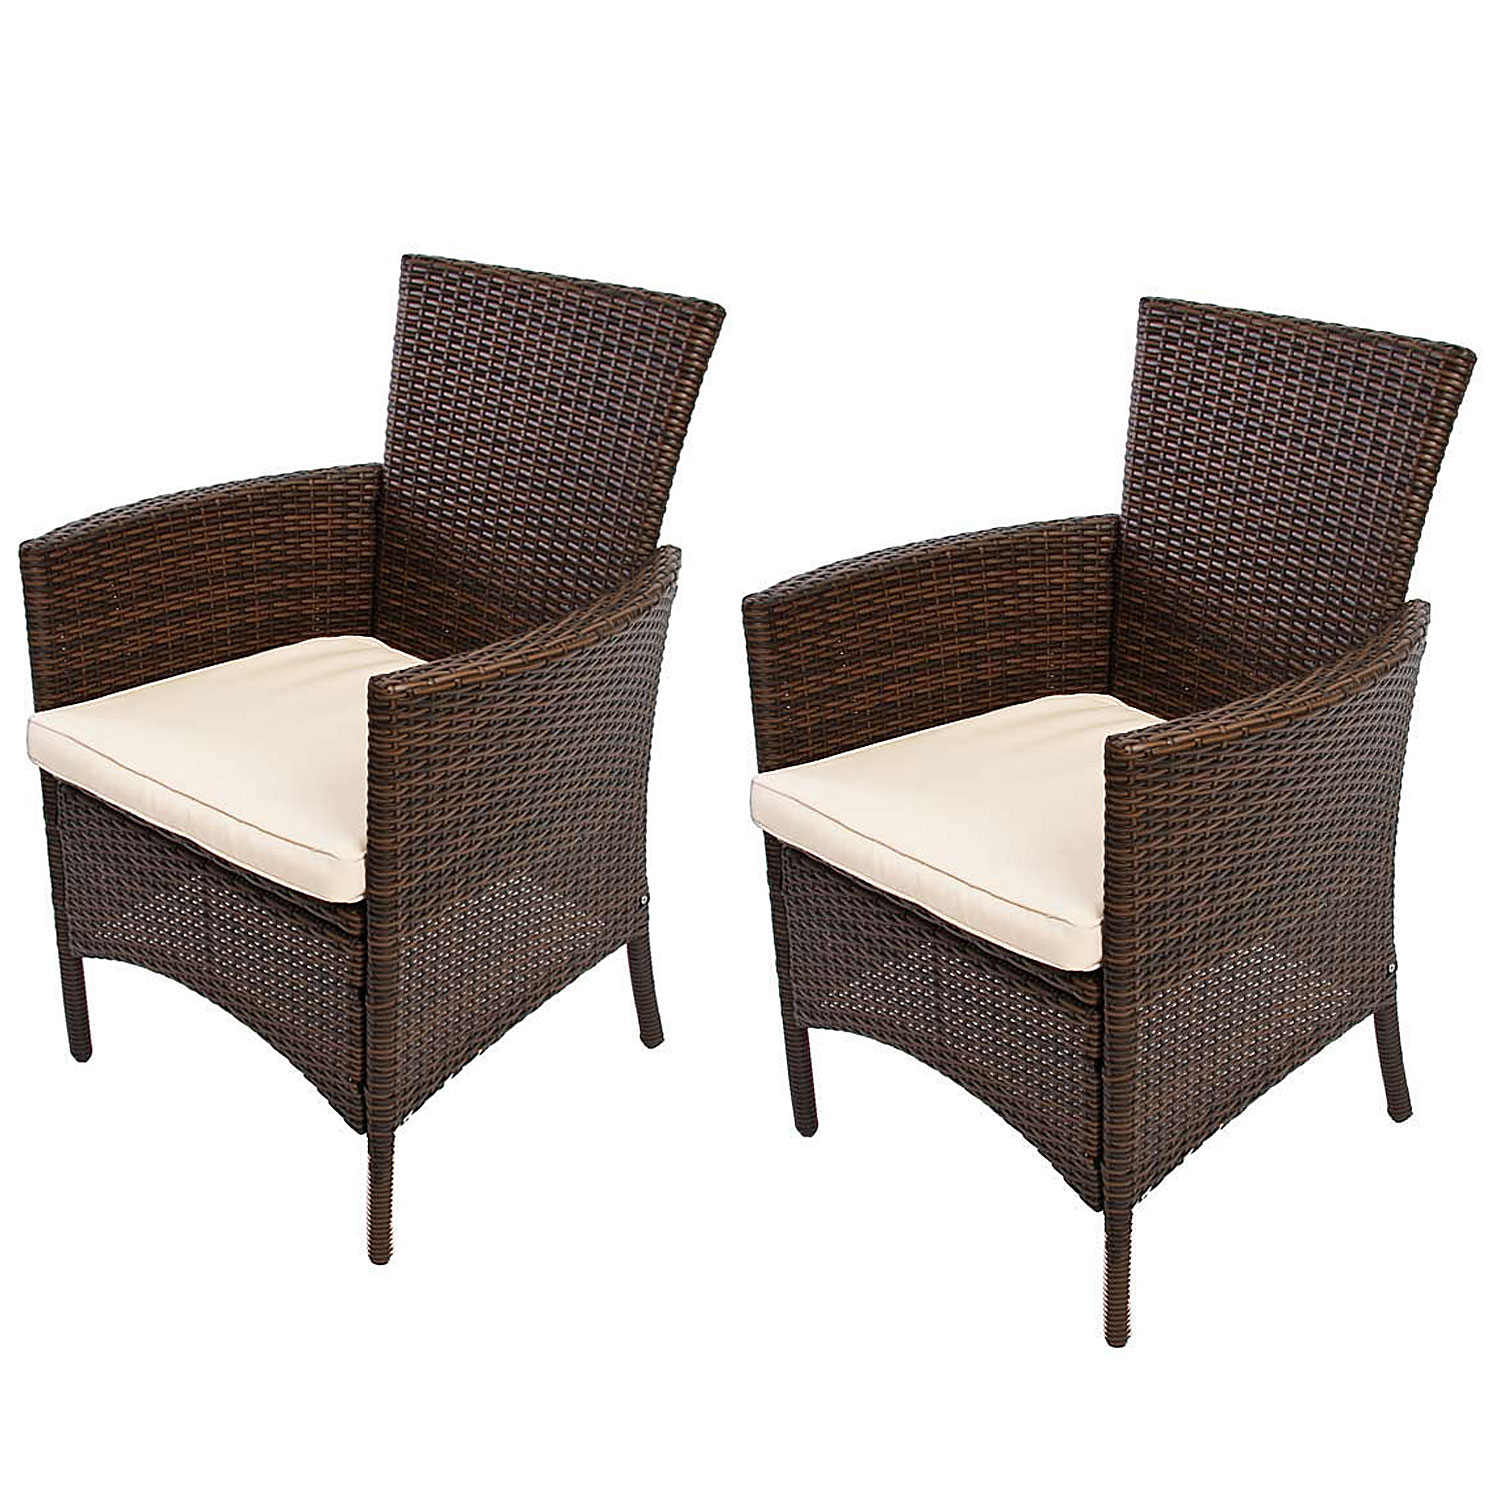 1x oder 2x gartensessel korbsessel romv poly rattan alu. Black Bedroom Furniture Sets. Home Design Ideas